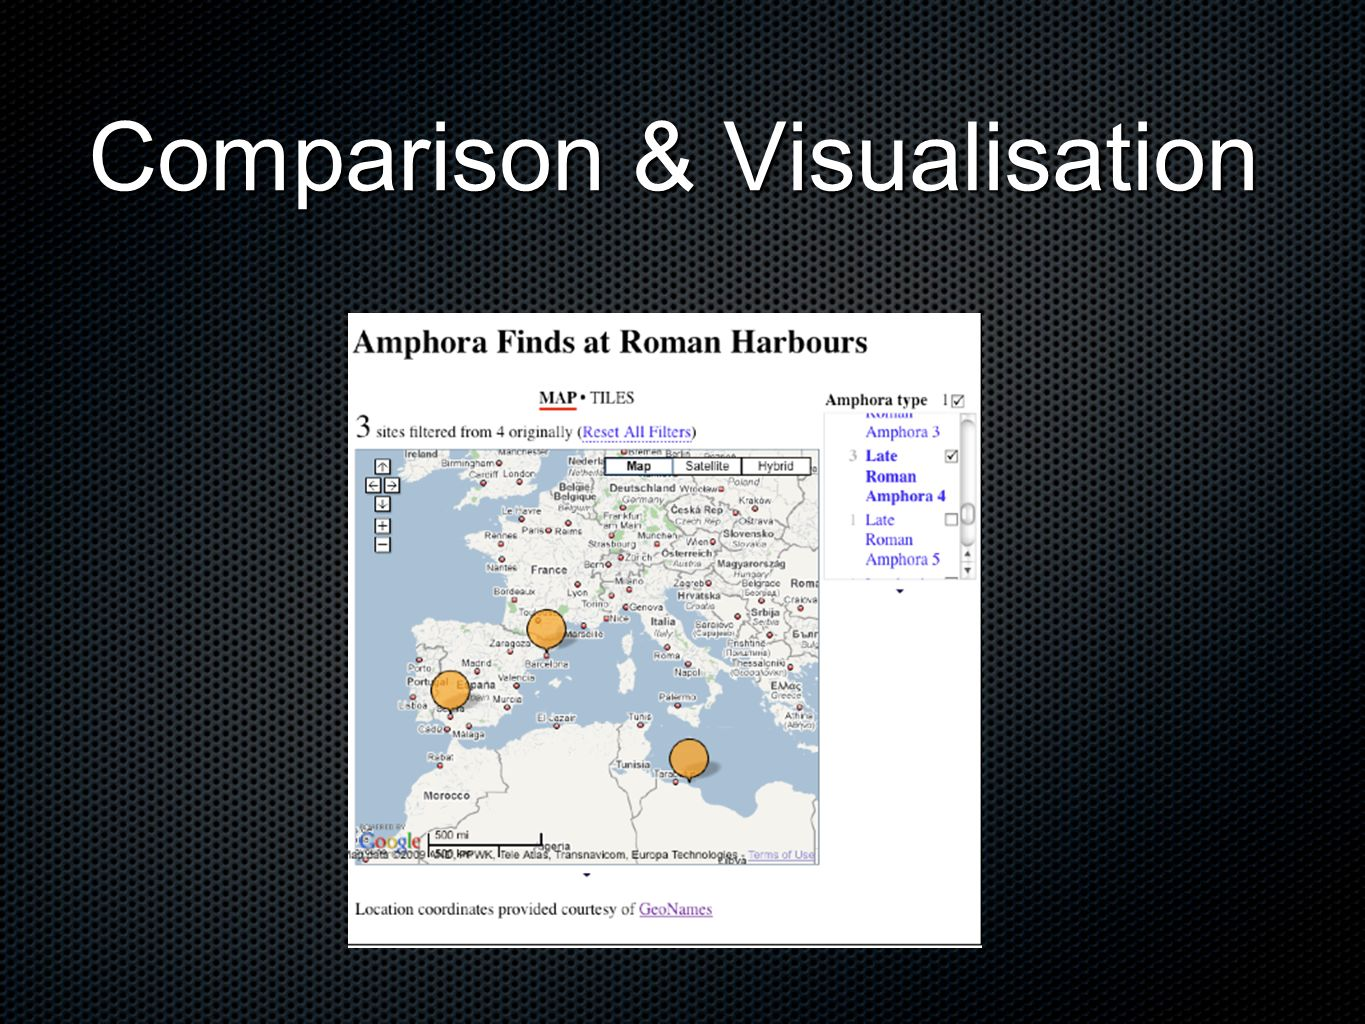 Comparison & Visualisation